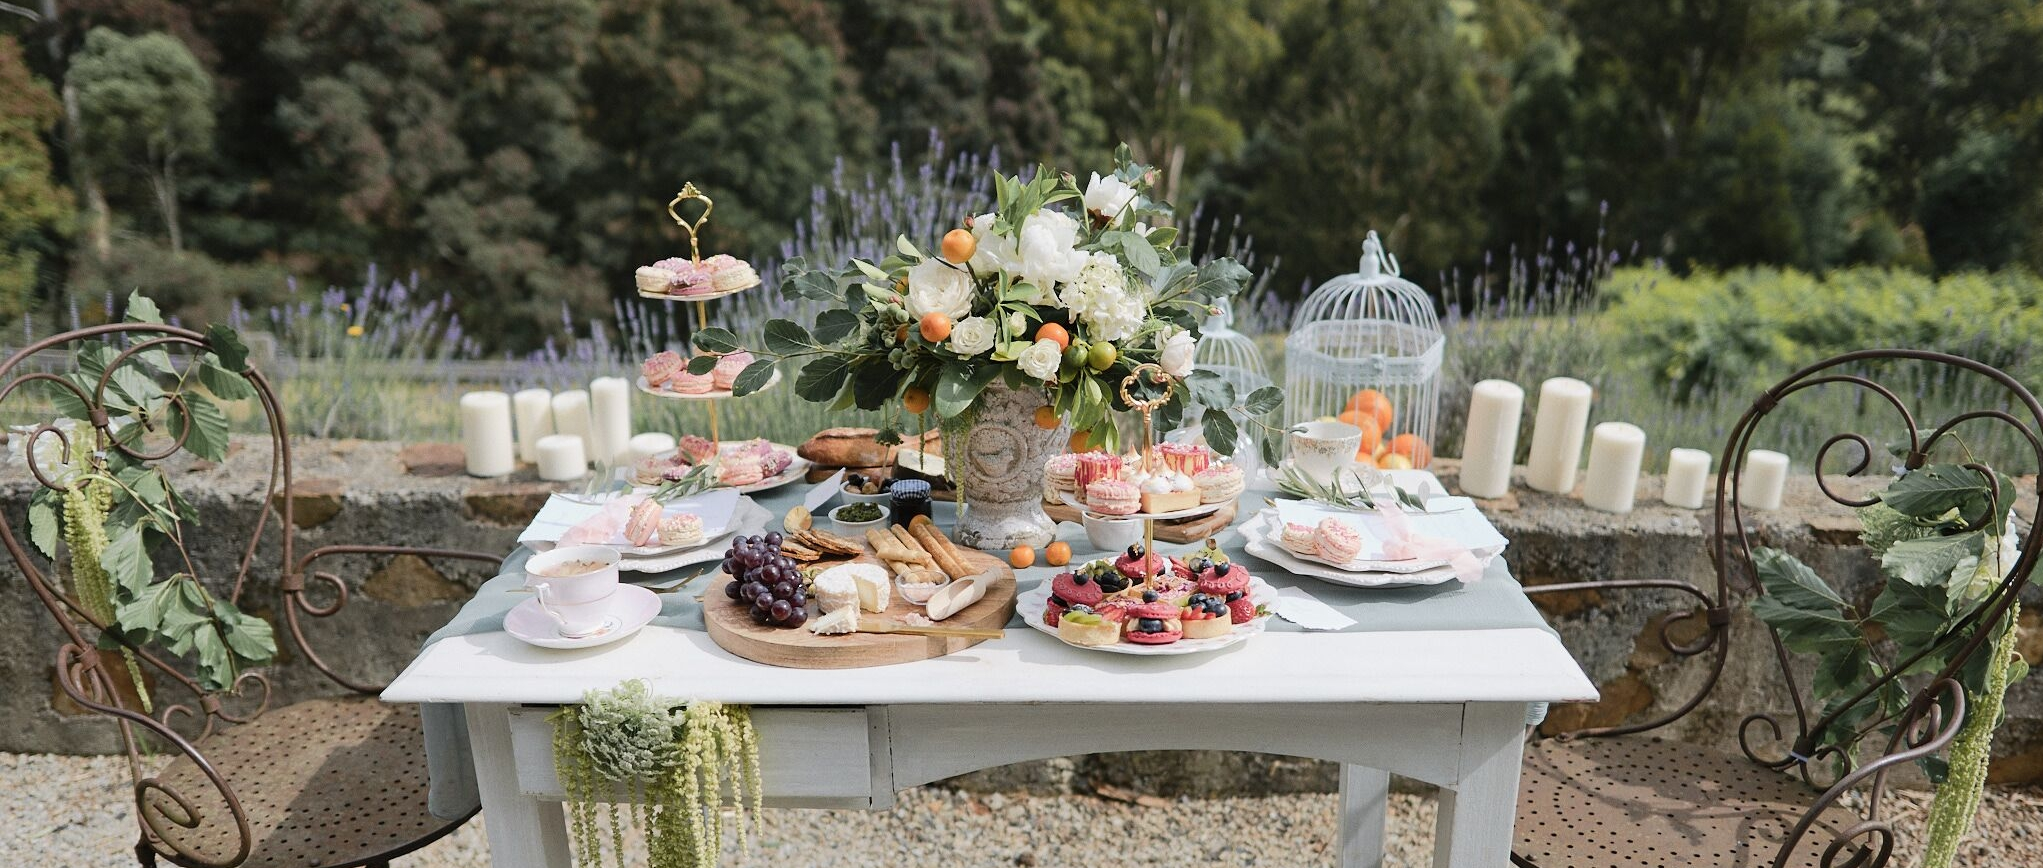 Image by  Sephory Photography    Please direct questions to the Mary Eats Cake Bookings Team on (03) 8394 5661 or eat@maryeatscake.com.au